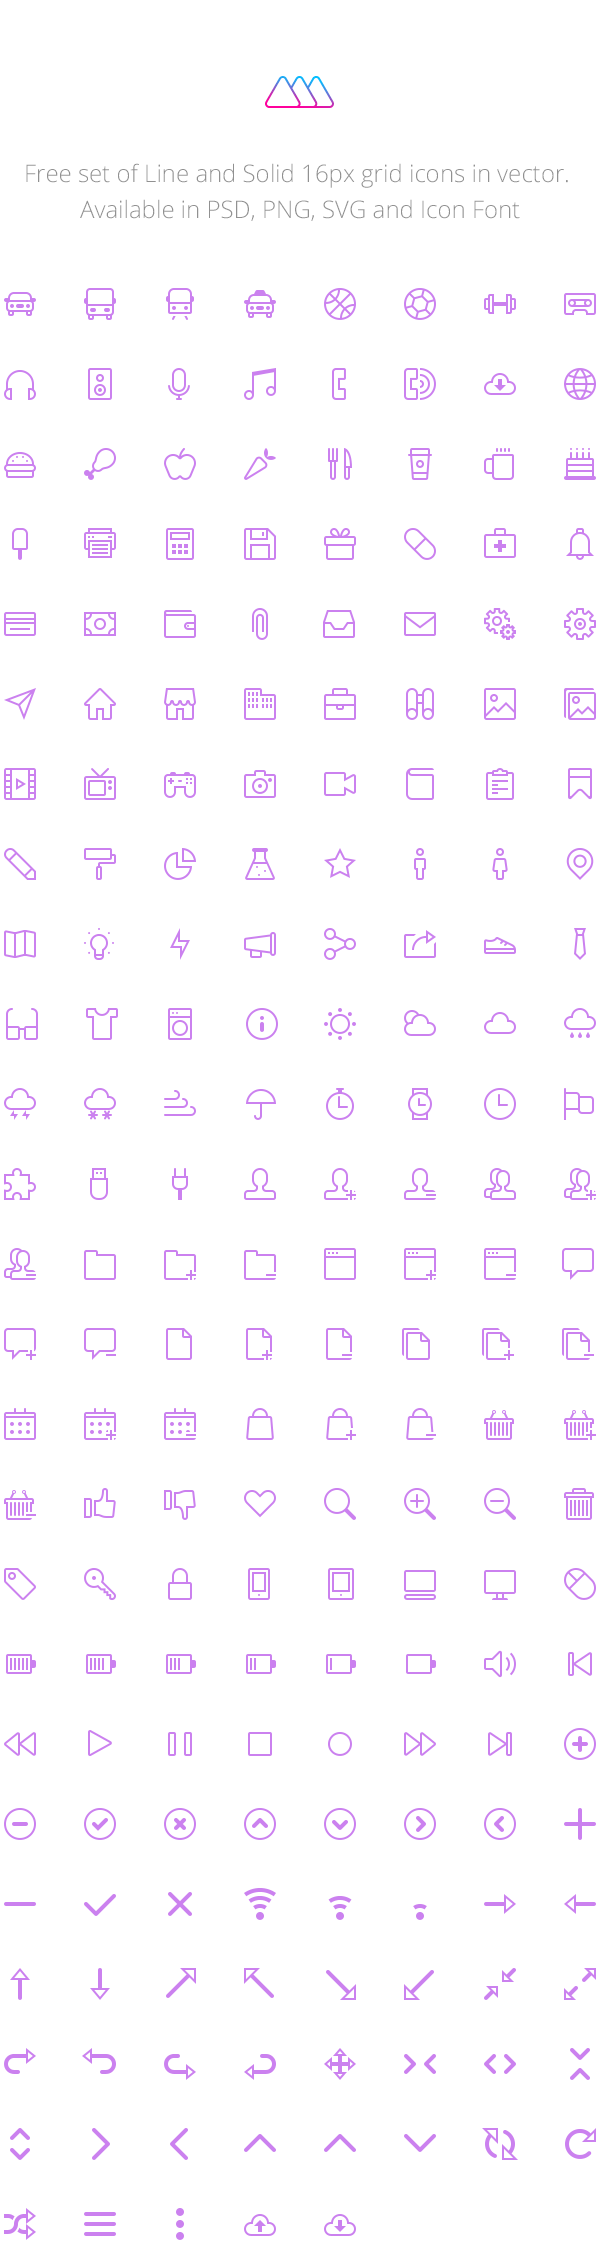 (210 Icons) Set of Line & Solid 16px Grid Icons Vol1